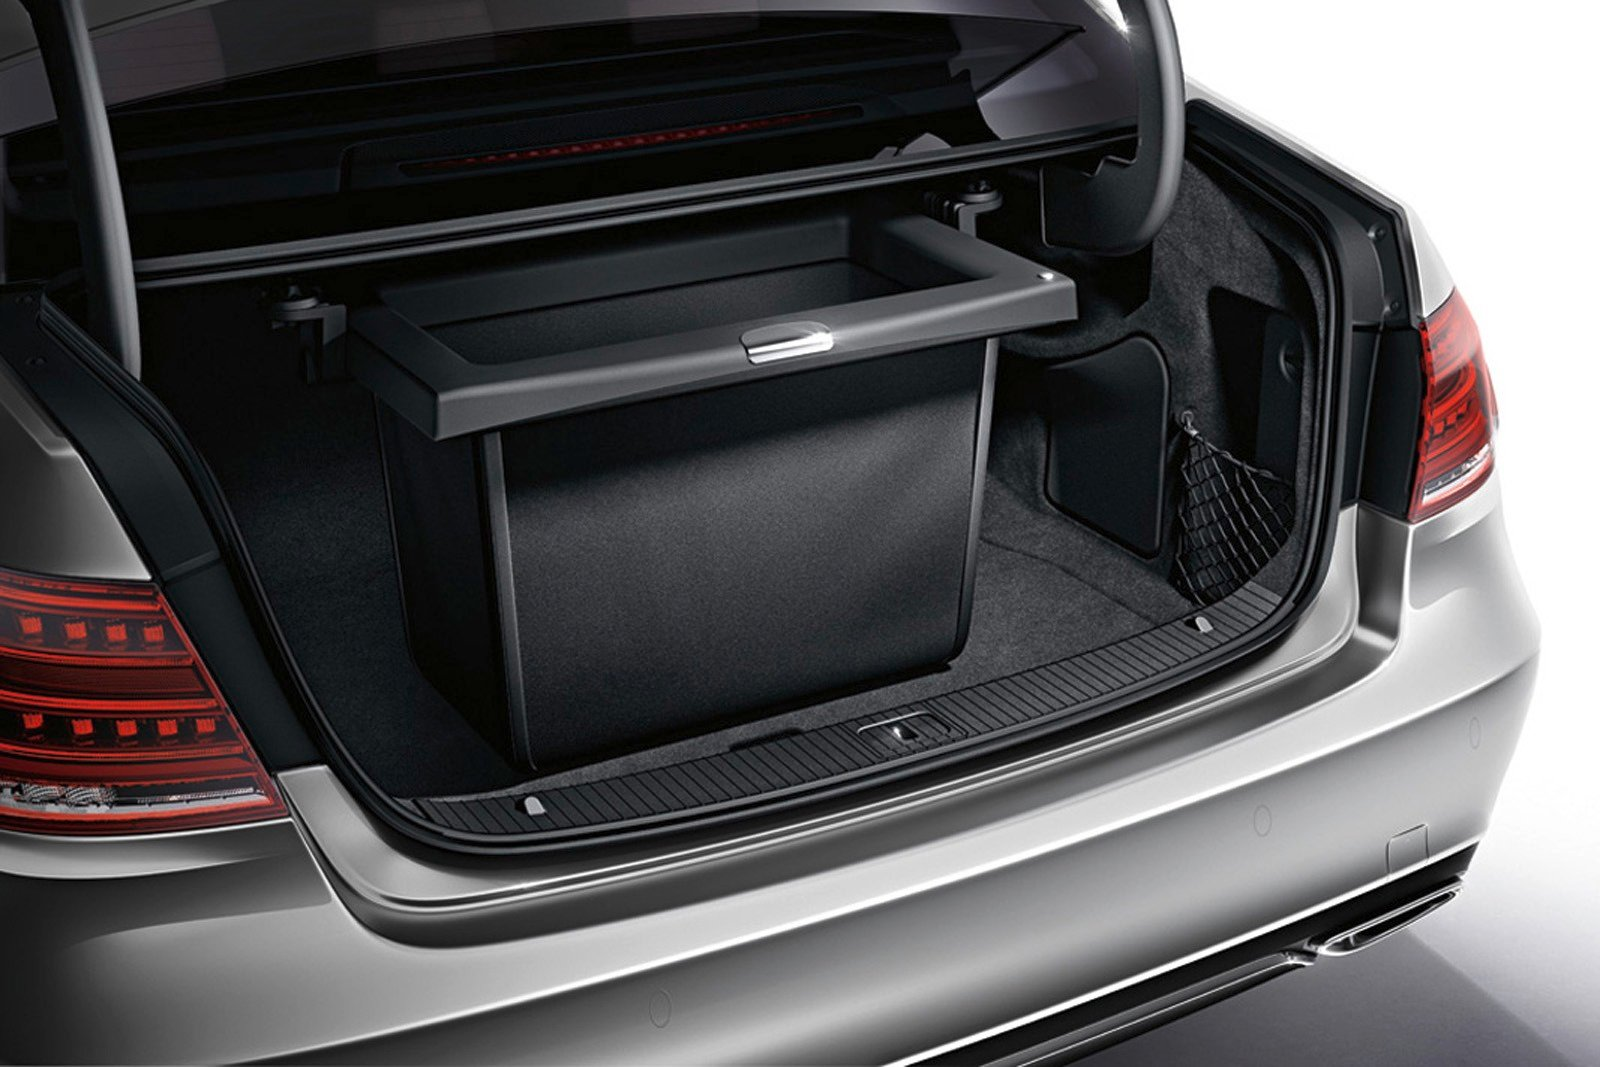 Most Expensive Mercedes >> 2014 Mercedes Benz S-Class accessories unveiled